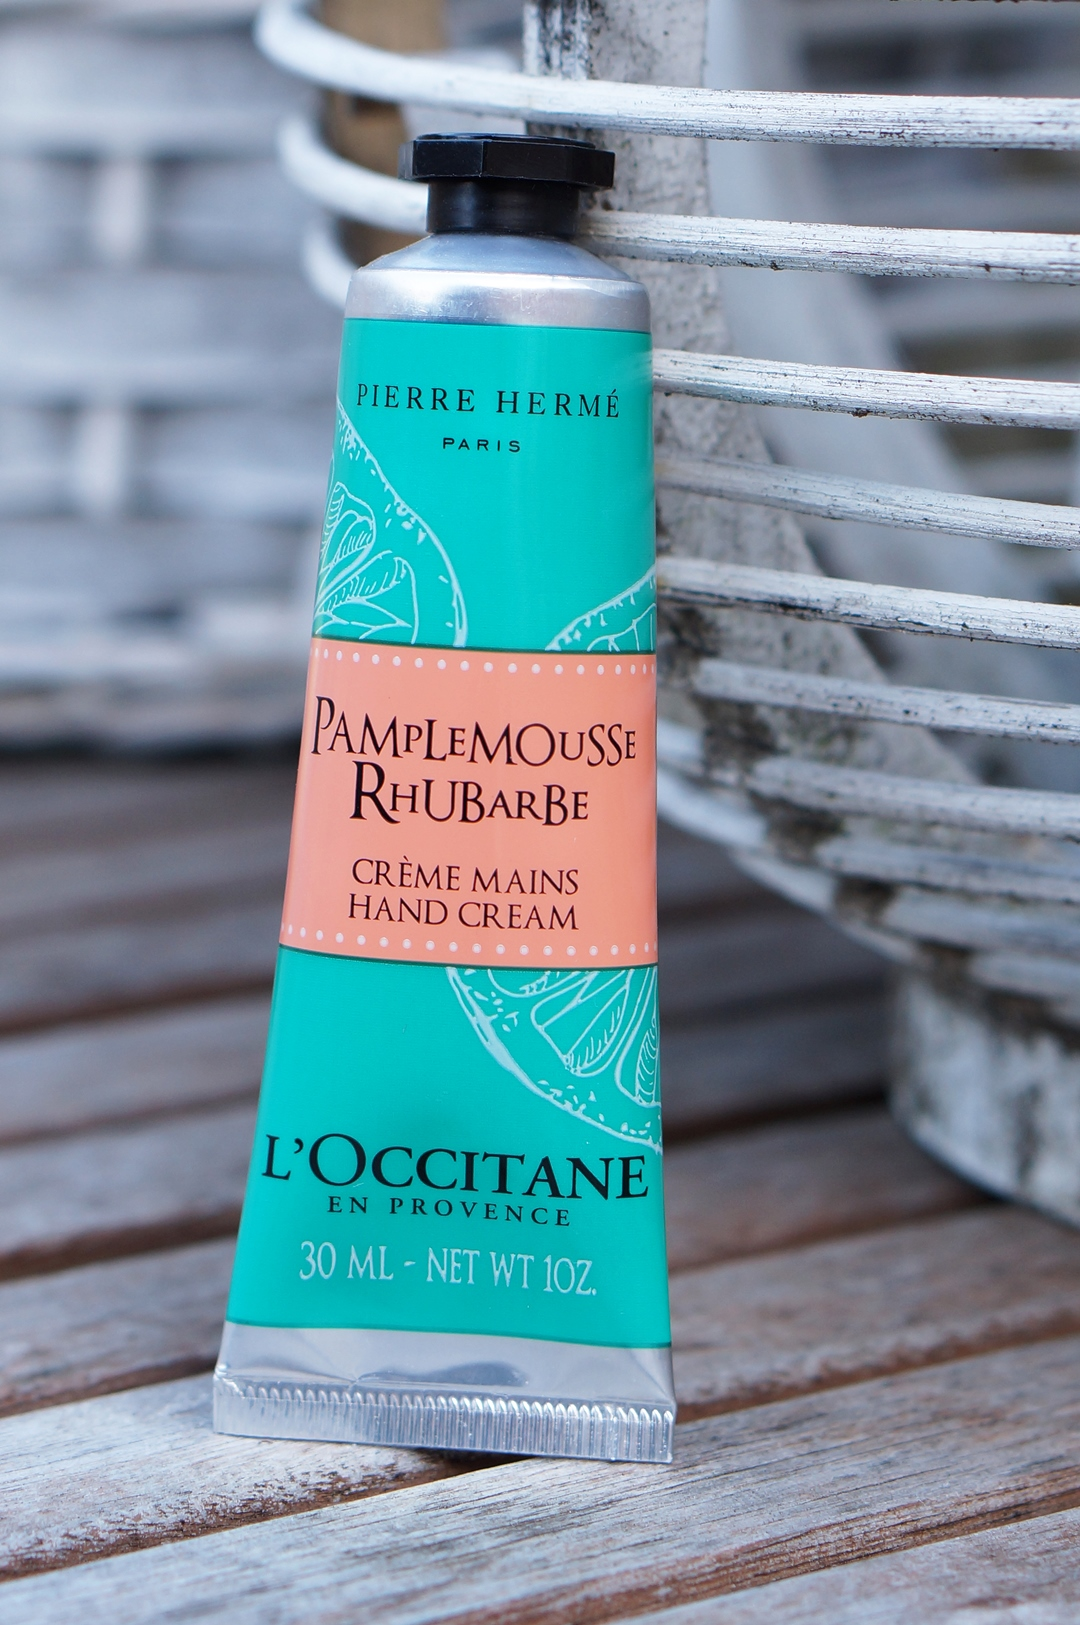 L'Occitane Pamplemousse Rhubarbe body lotion & hand cream